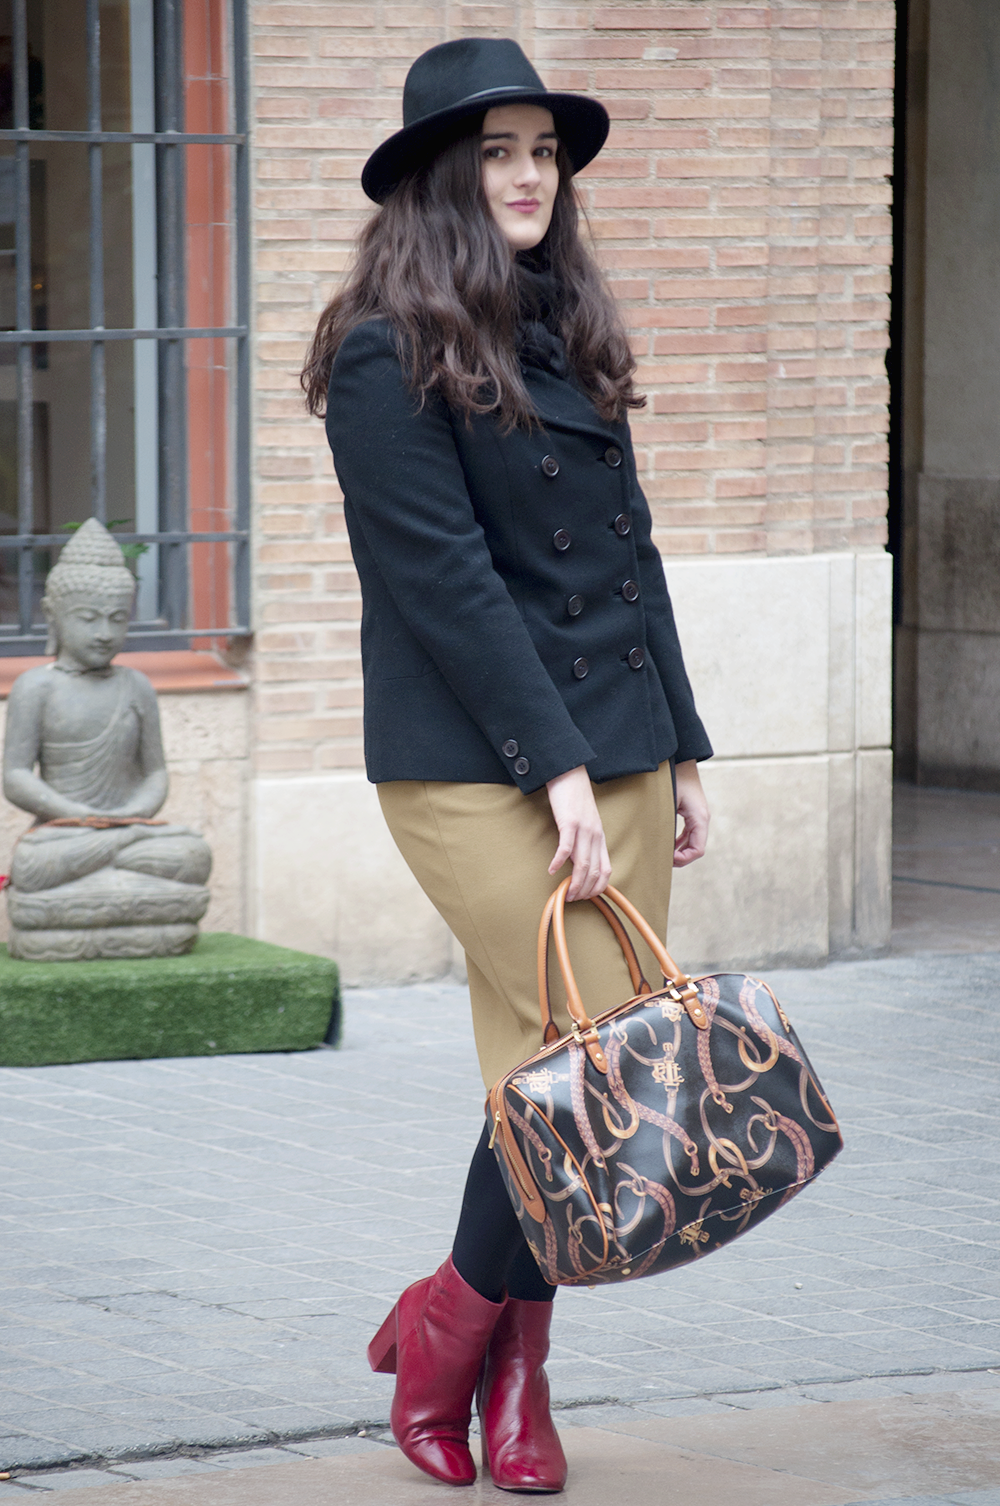 valencia fashion blogger VLC something fashion, style streetstyle winter bimbaylola red boots, fedora hat howtowear ralph lauren coat, amanda ramon blog de moda valenciana española, makeup beauty brunette